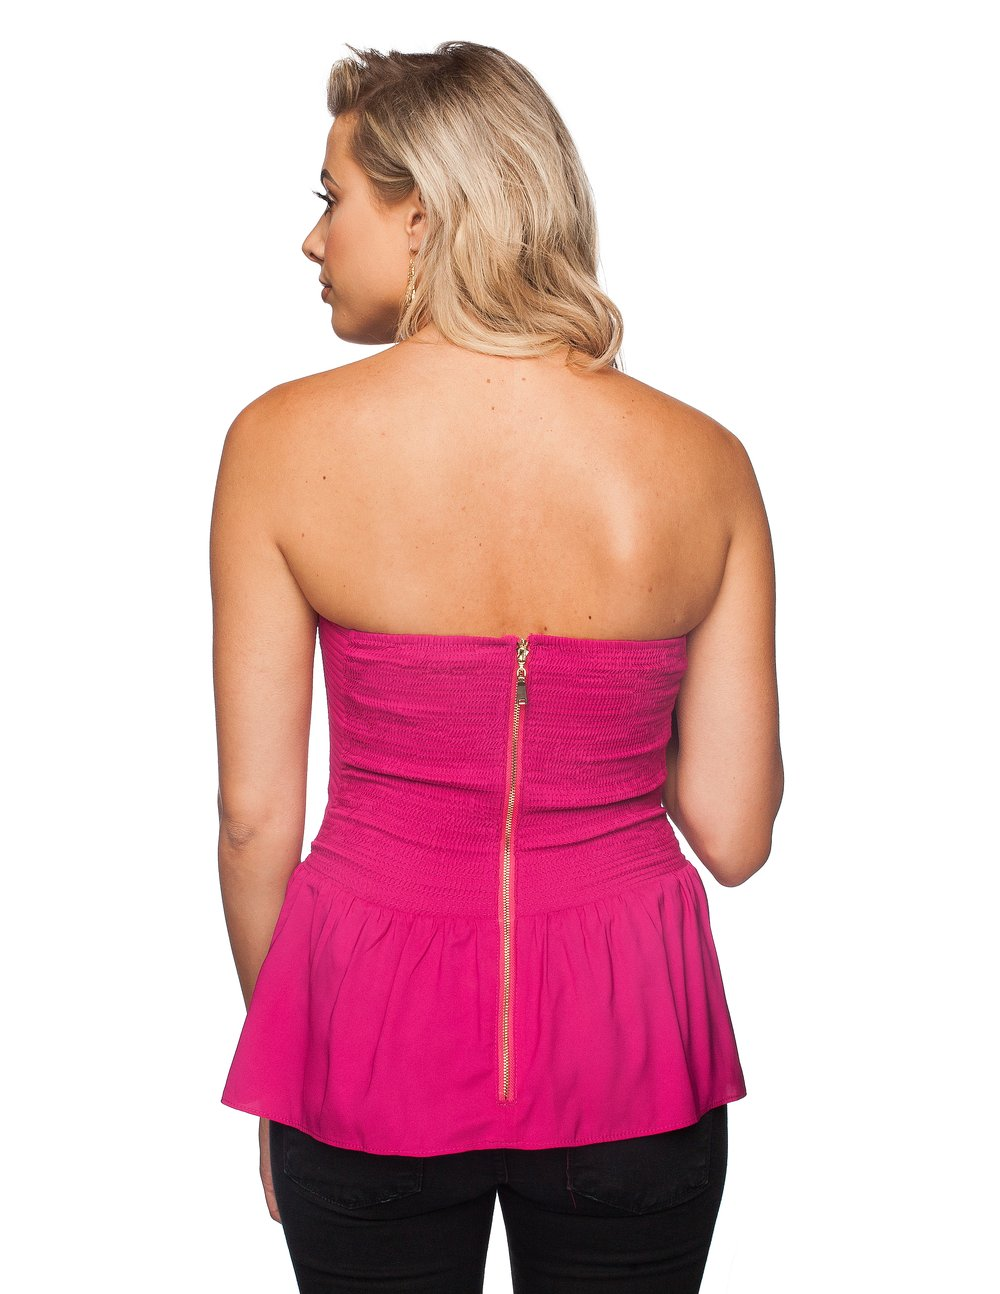 Eve Top in Magenta